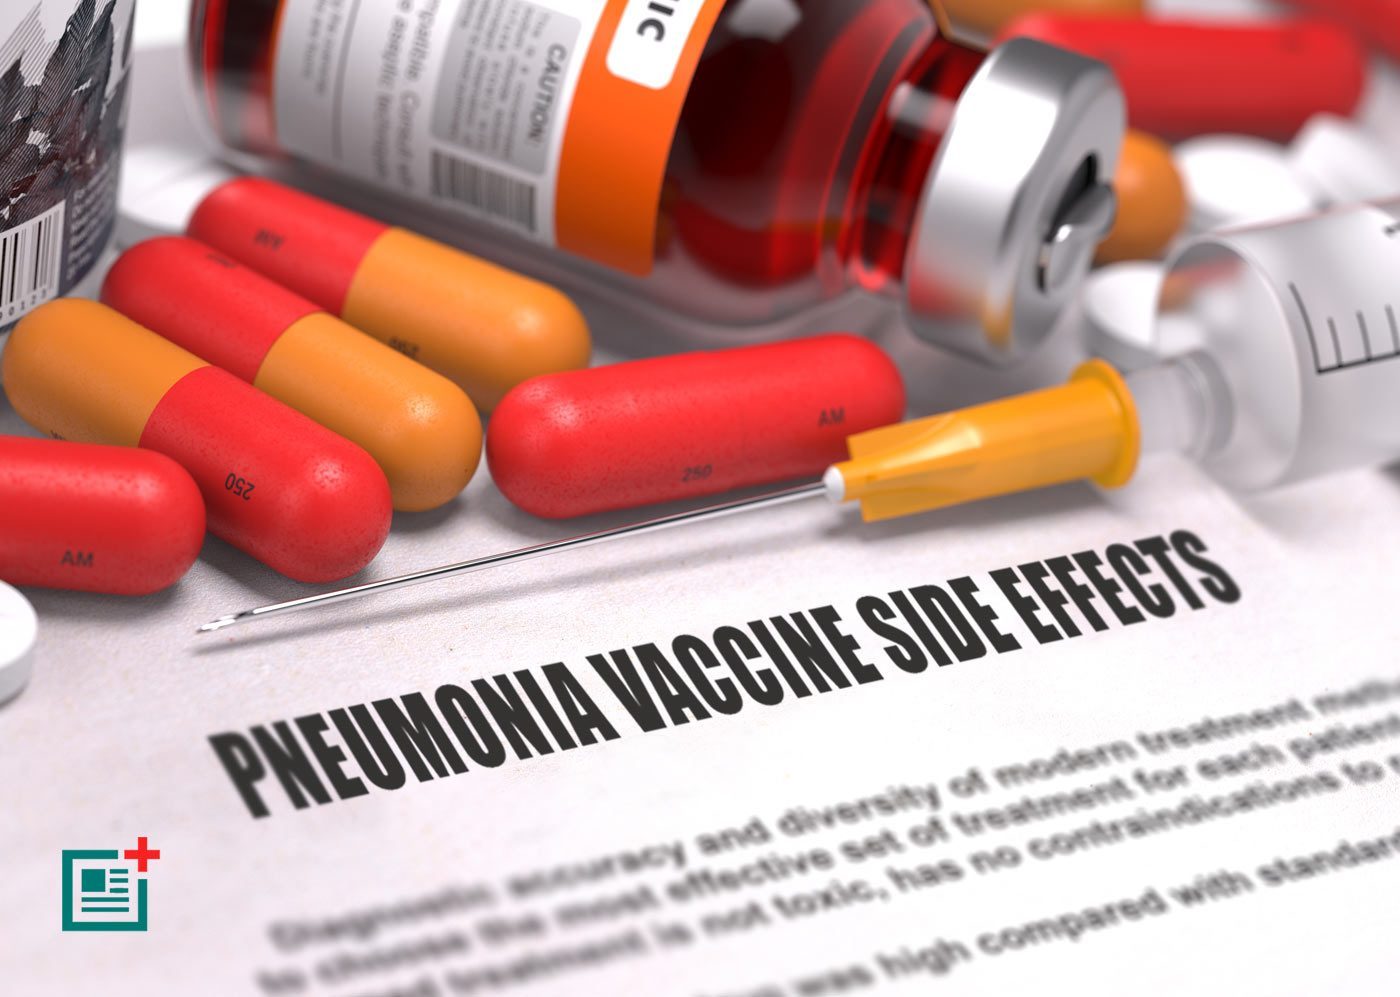 What Are Some Side Effects Of The Merck Pneumovax Vaccine